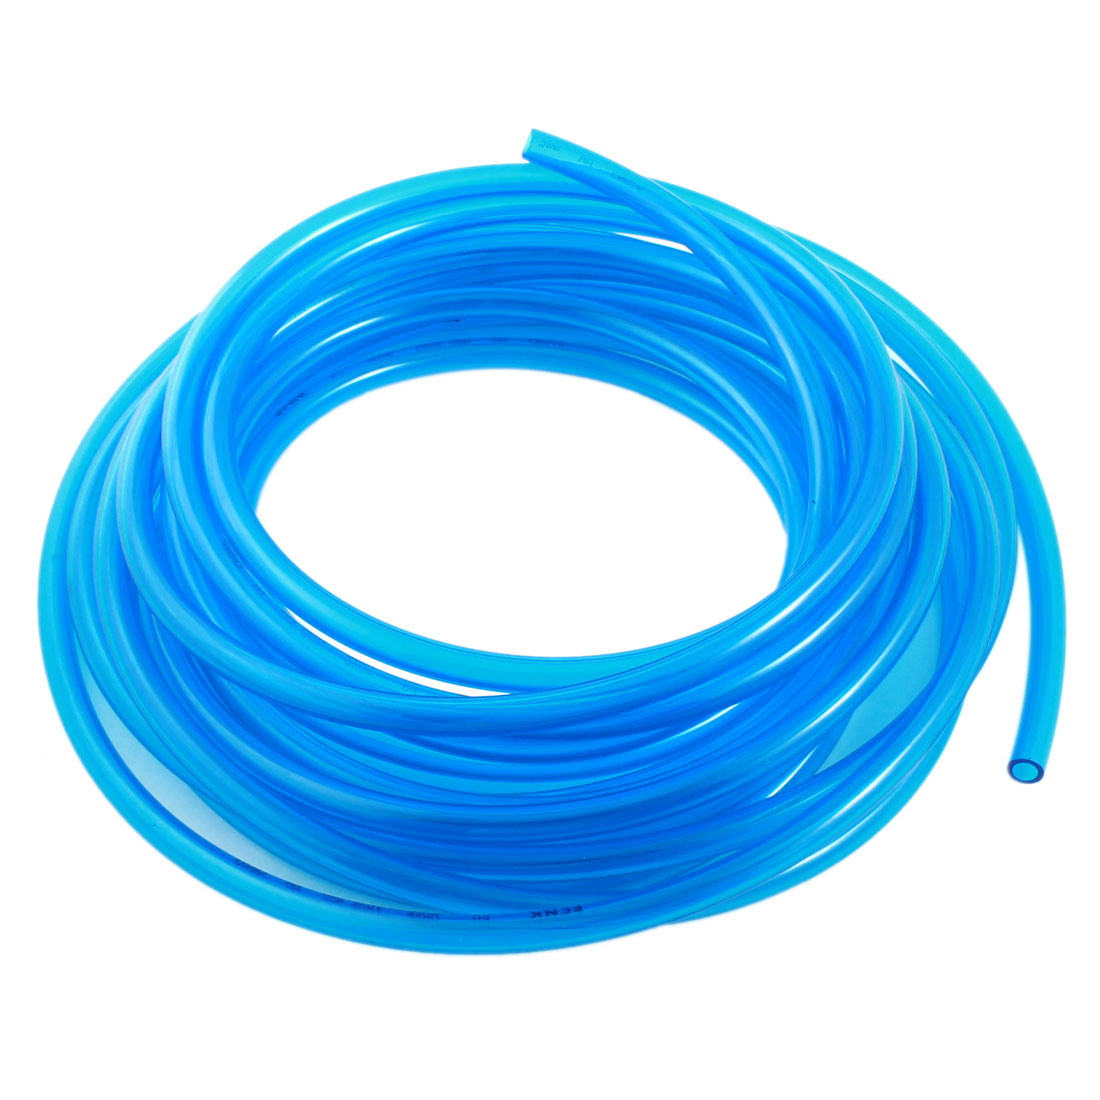 Air Gas Quick Fittings Connection PU Line Tube Hose 6.5x10mm 10M Clear Blue